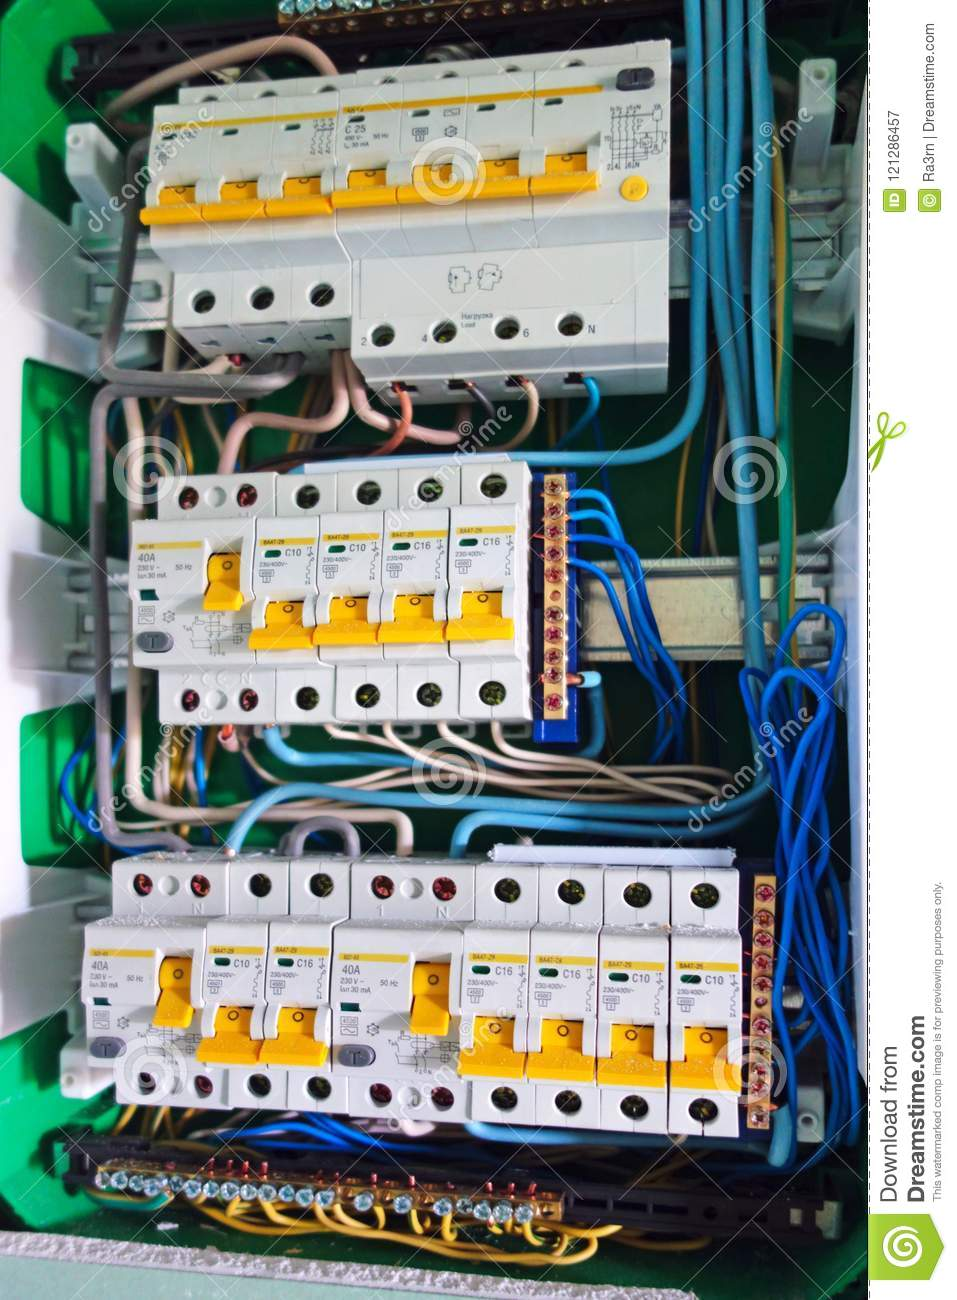 Stupendous Electric Board With Circuit Breakers Stock Image Image Of Wiring 101 Taclepimsautoservicenl